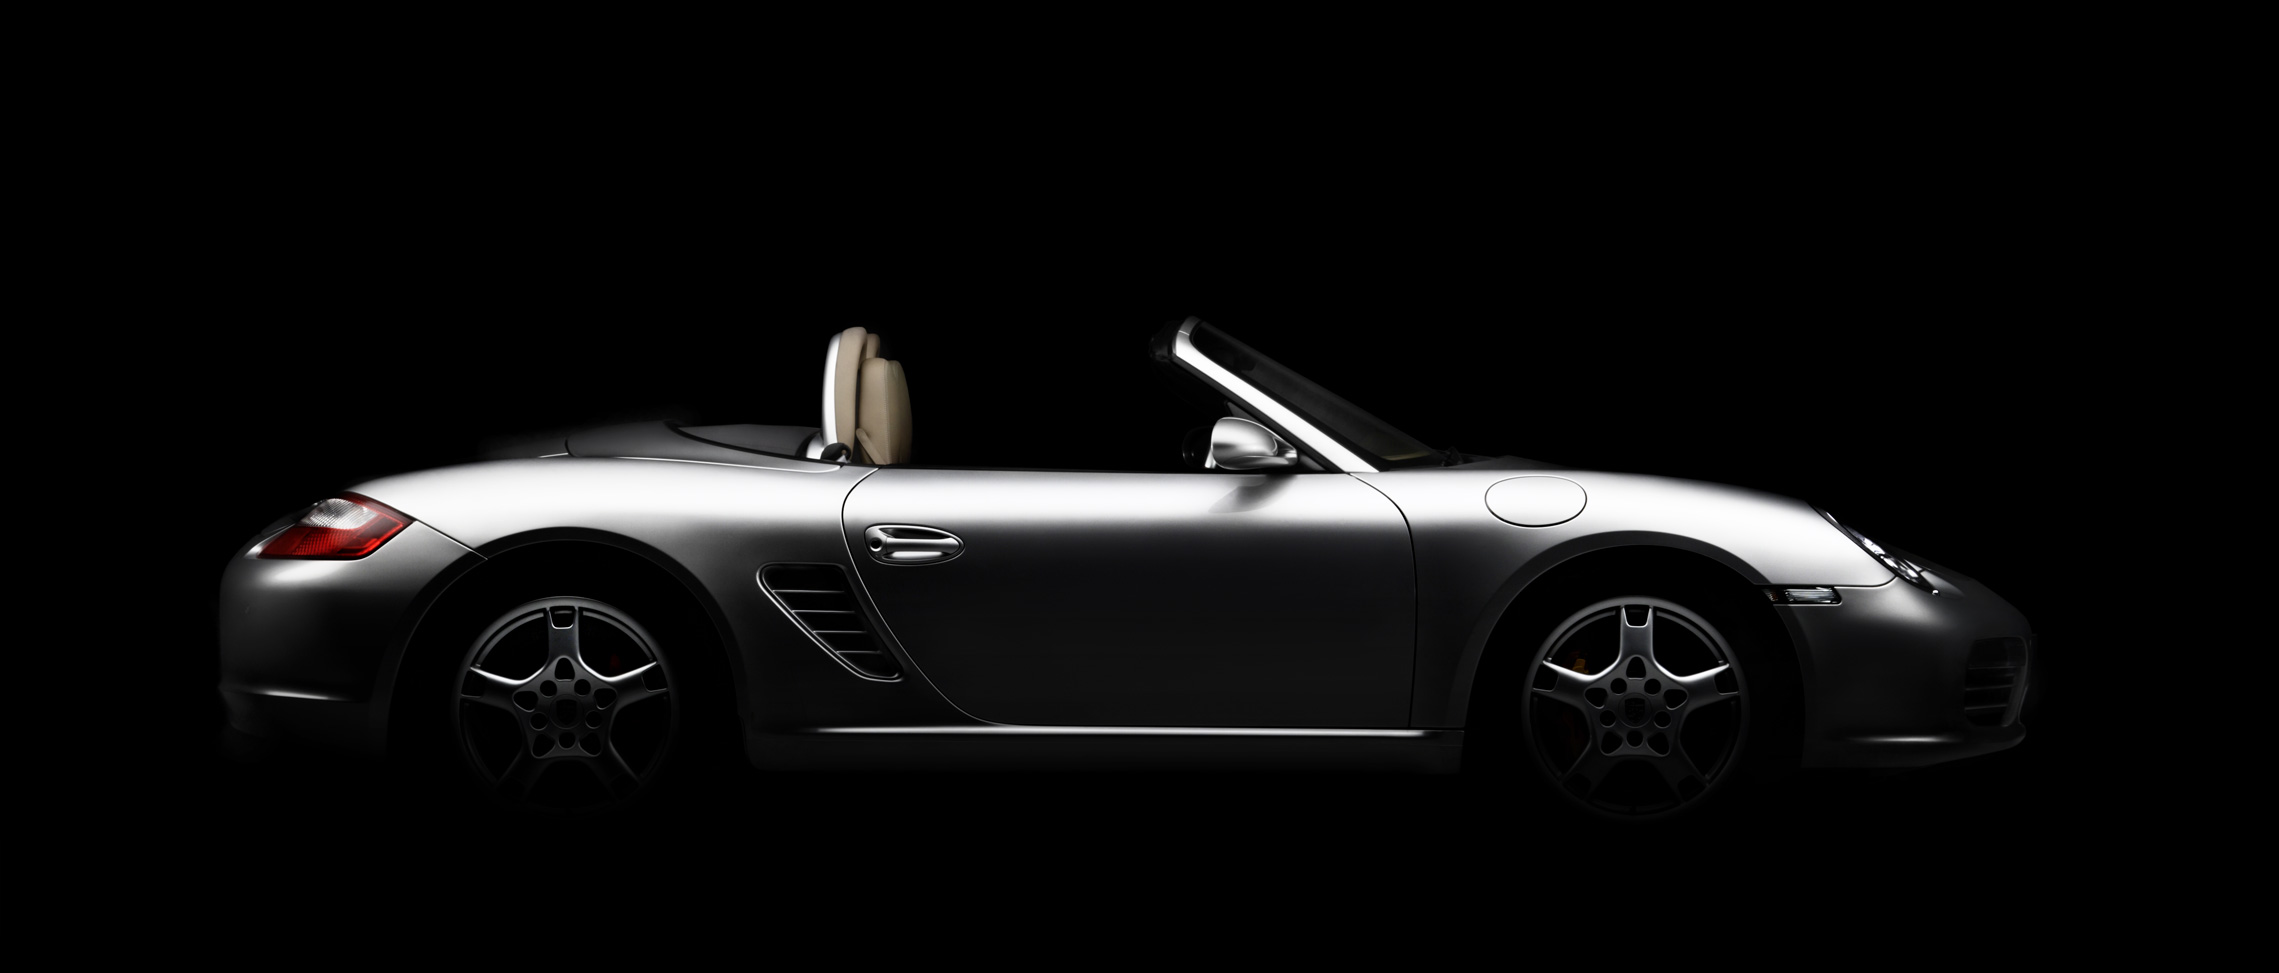 Boxster-01-04